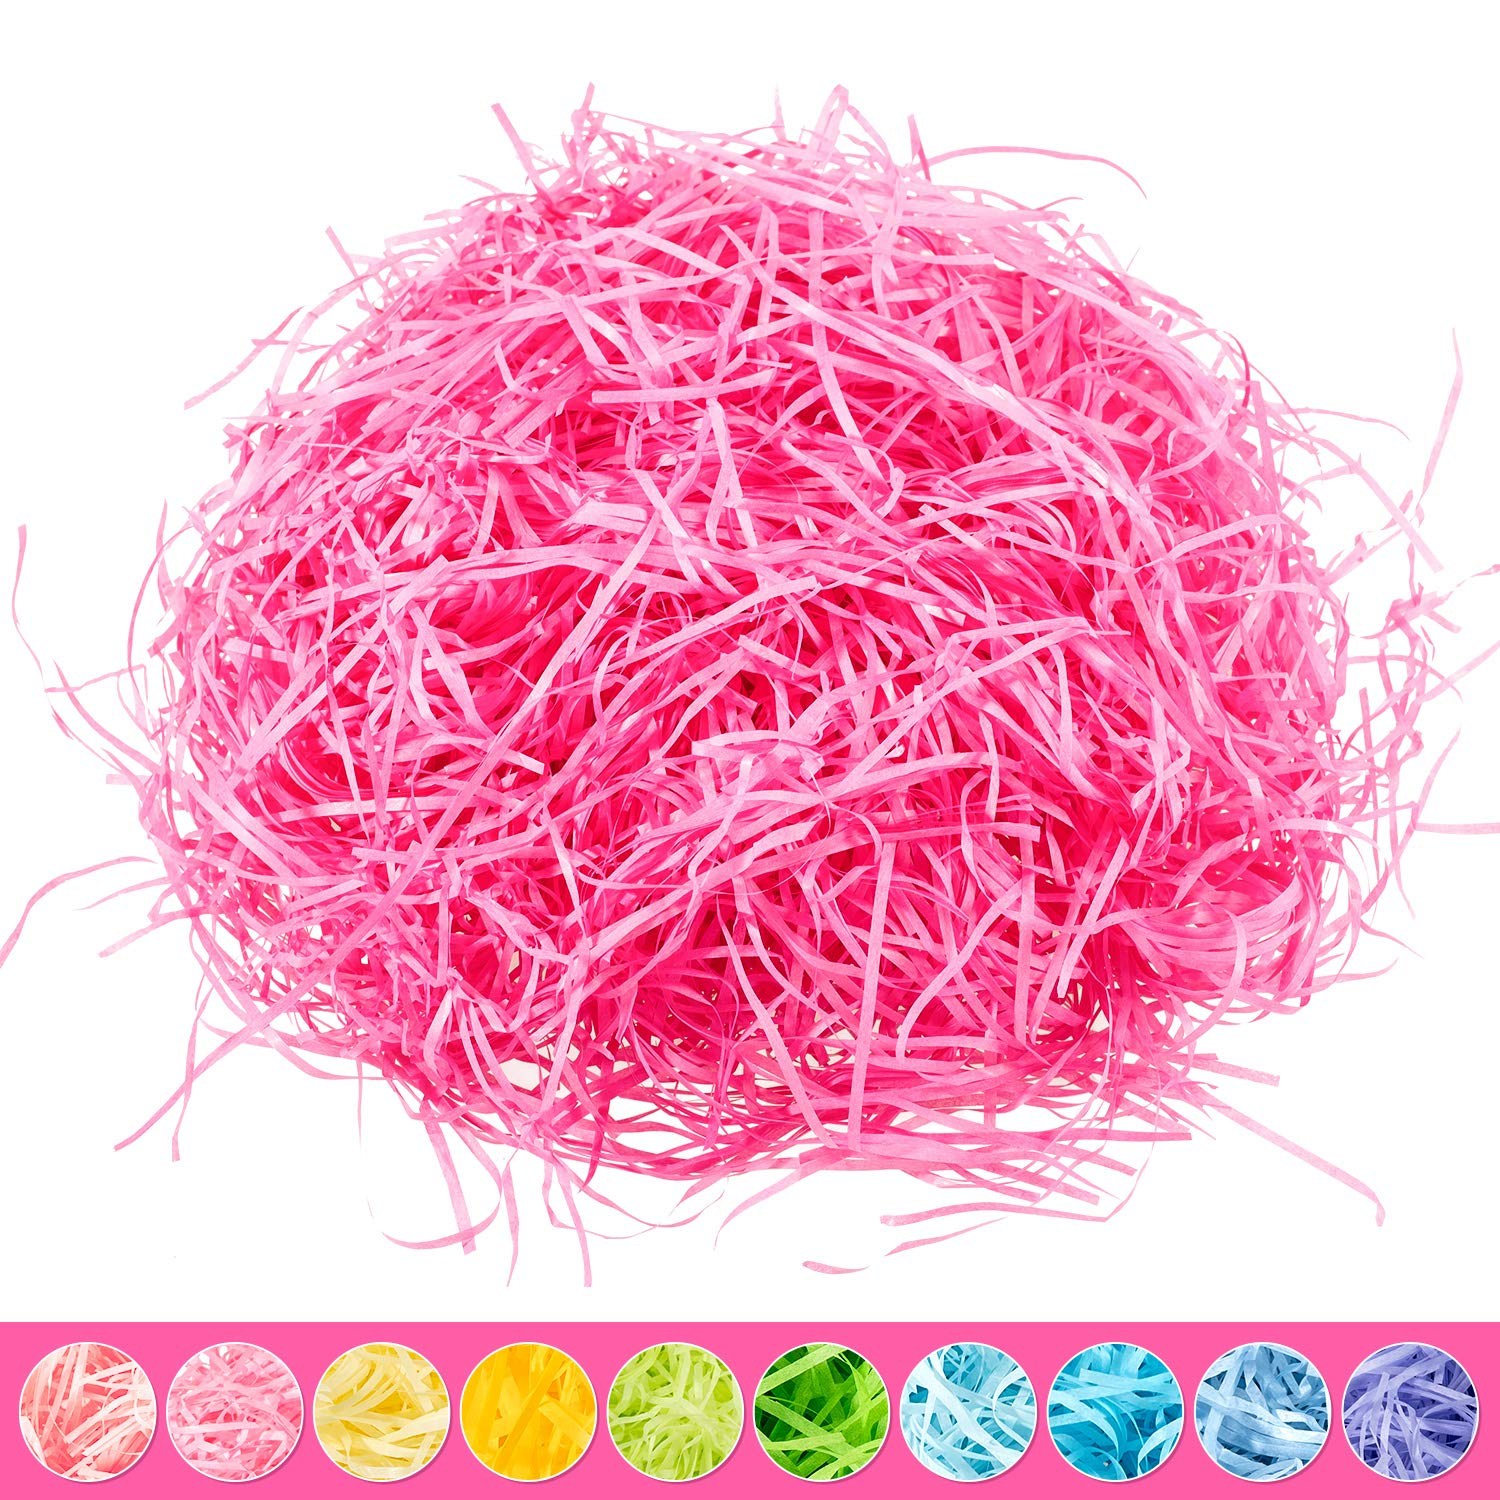 Whaline Easter Basket Grass Craft Shredded Tissue Raffia Gift Filler Paper Shreds for Baskets Egg Stuffers for Spring Party Supplies Accessories Decorations (Rose Red)